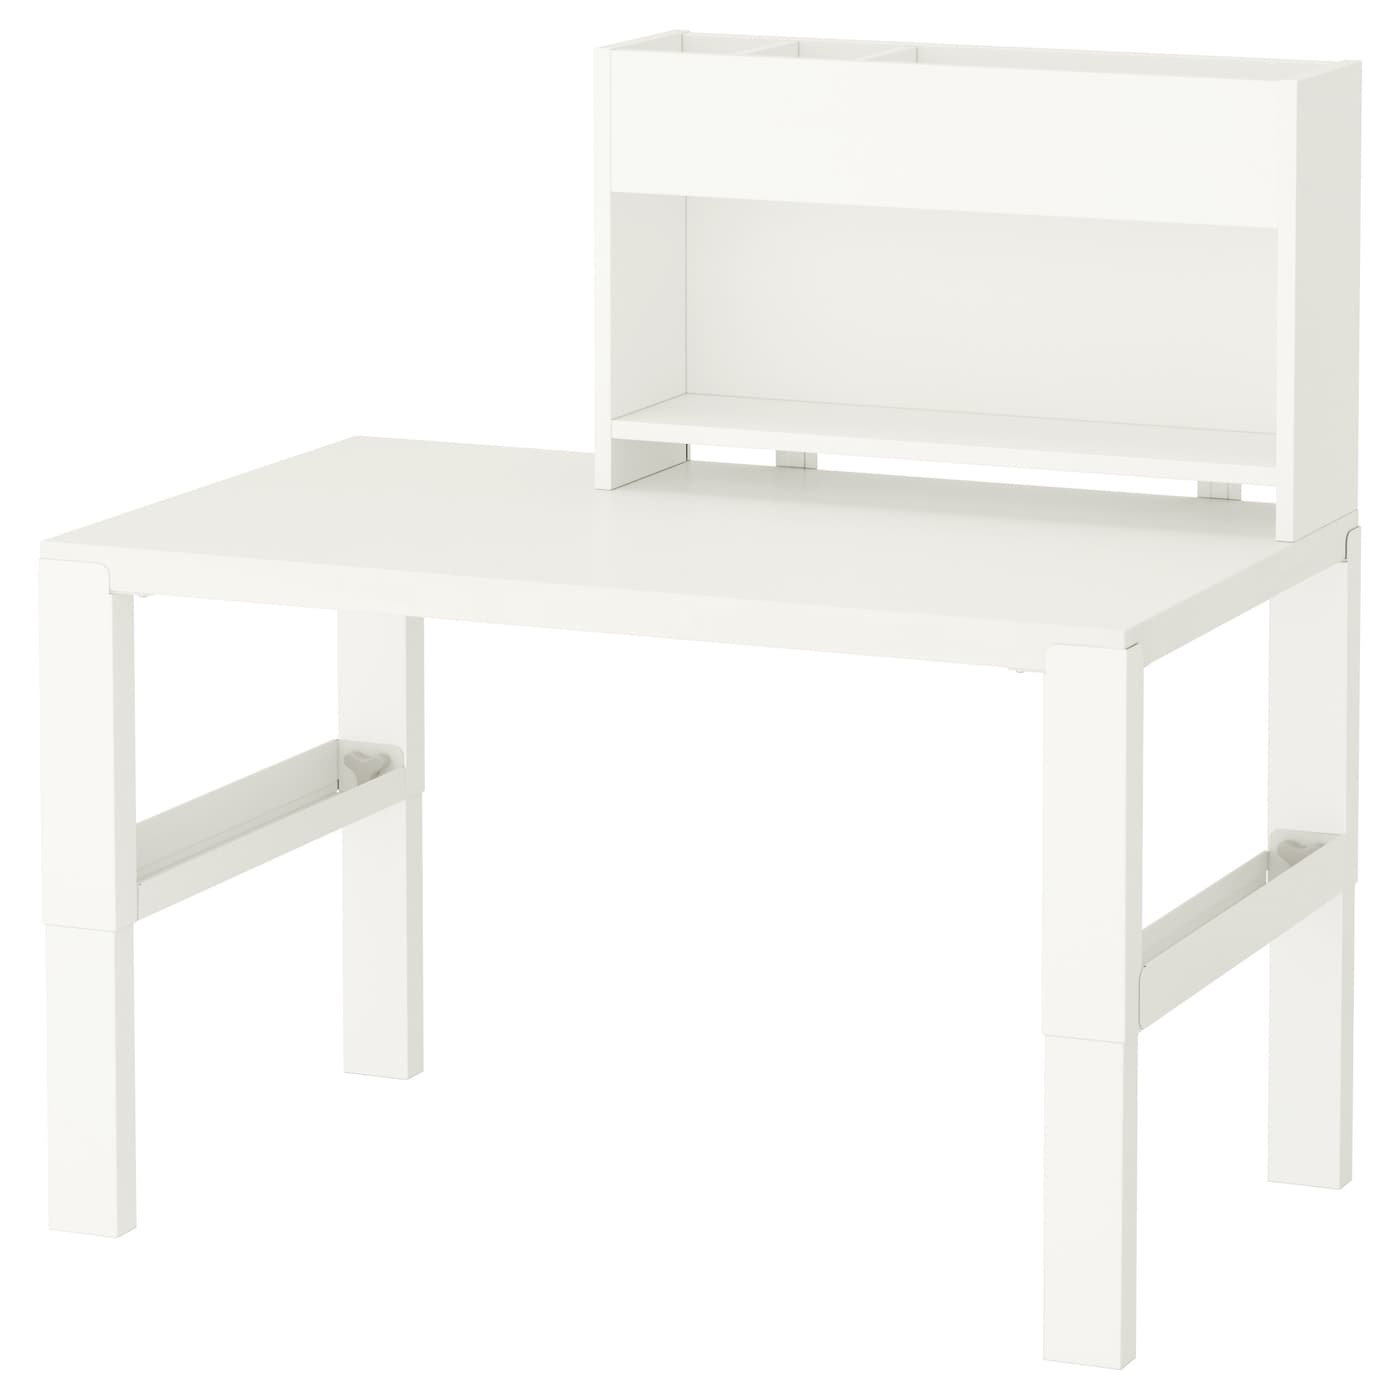 p hl bureau avec l ment compl mentaire blanc 96 x 58 cm ikea. Black Bedroom Furniture Sets. Home Design Ideas